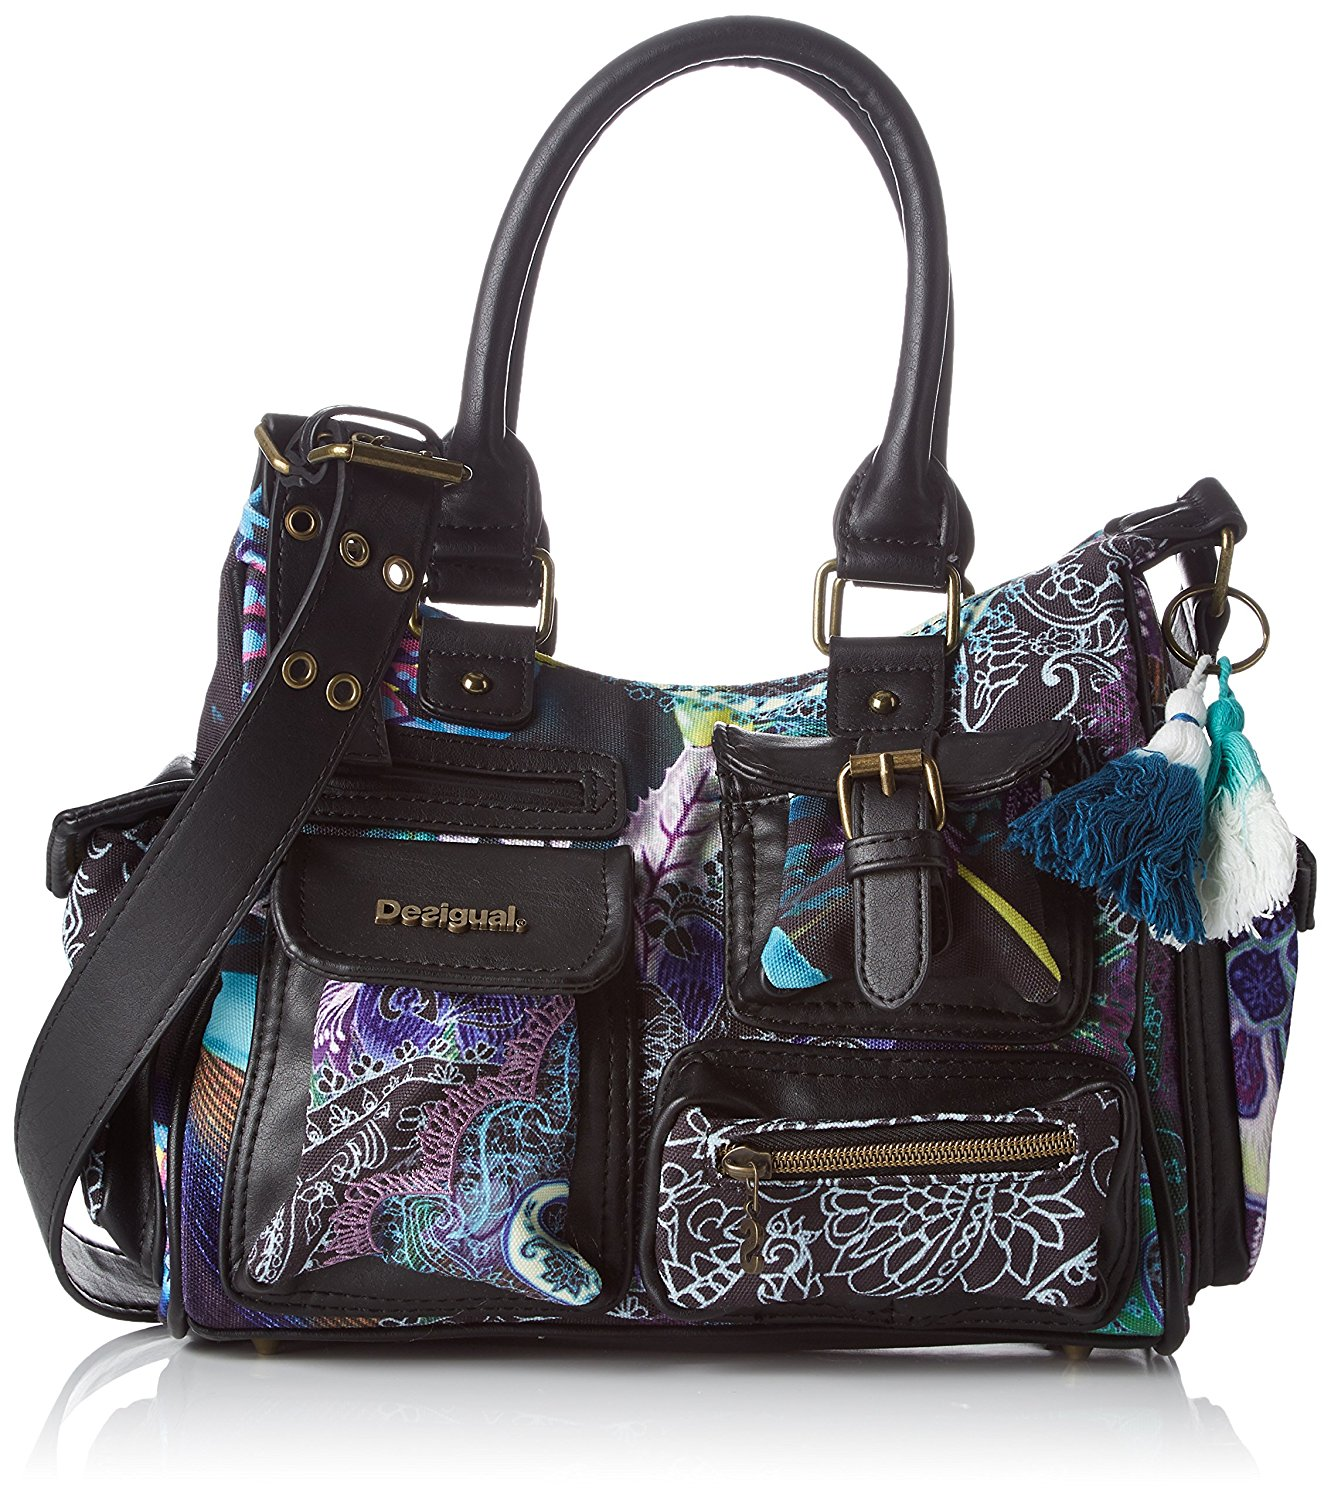 Desigual Estampado Bolso Mini Multicolor Boheme London Yy6bvfg7